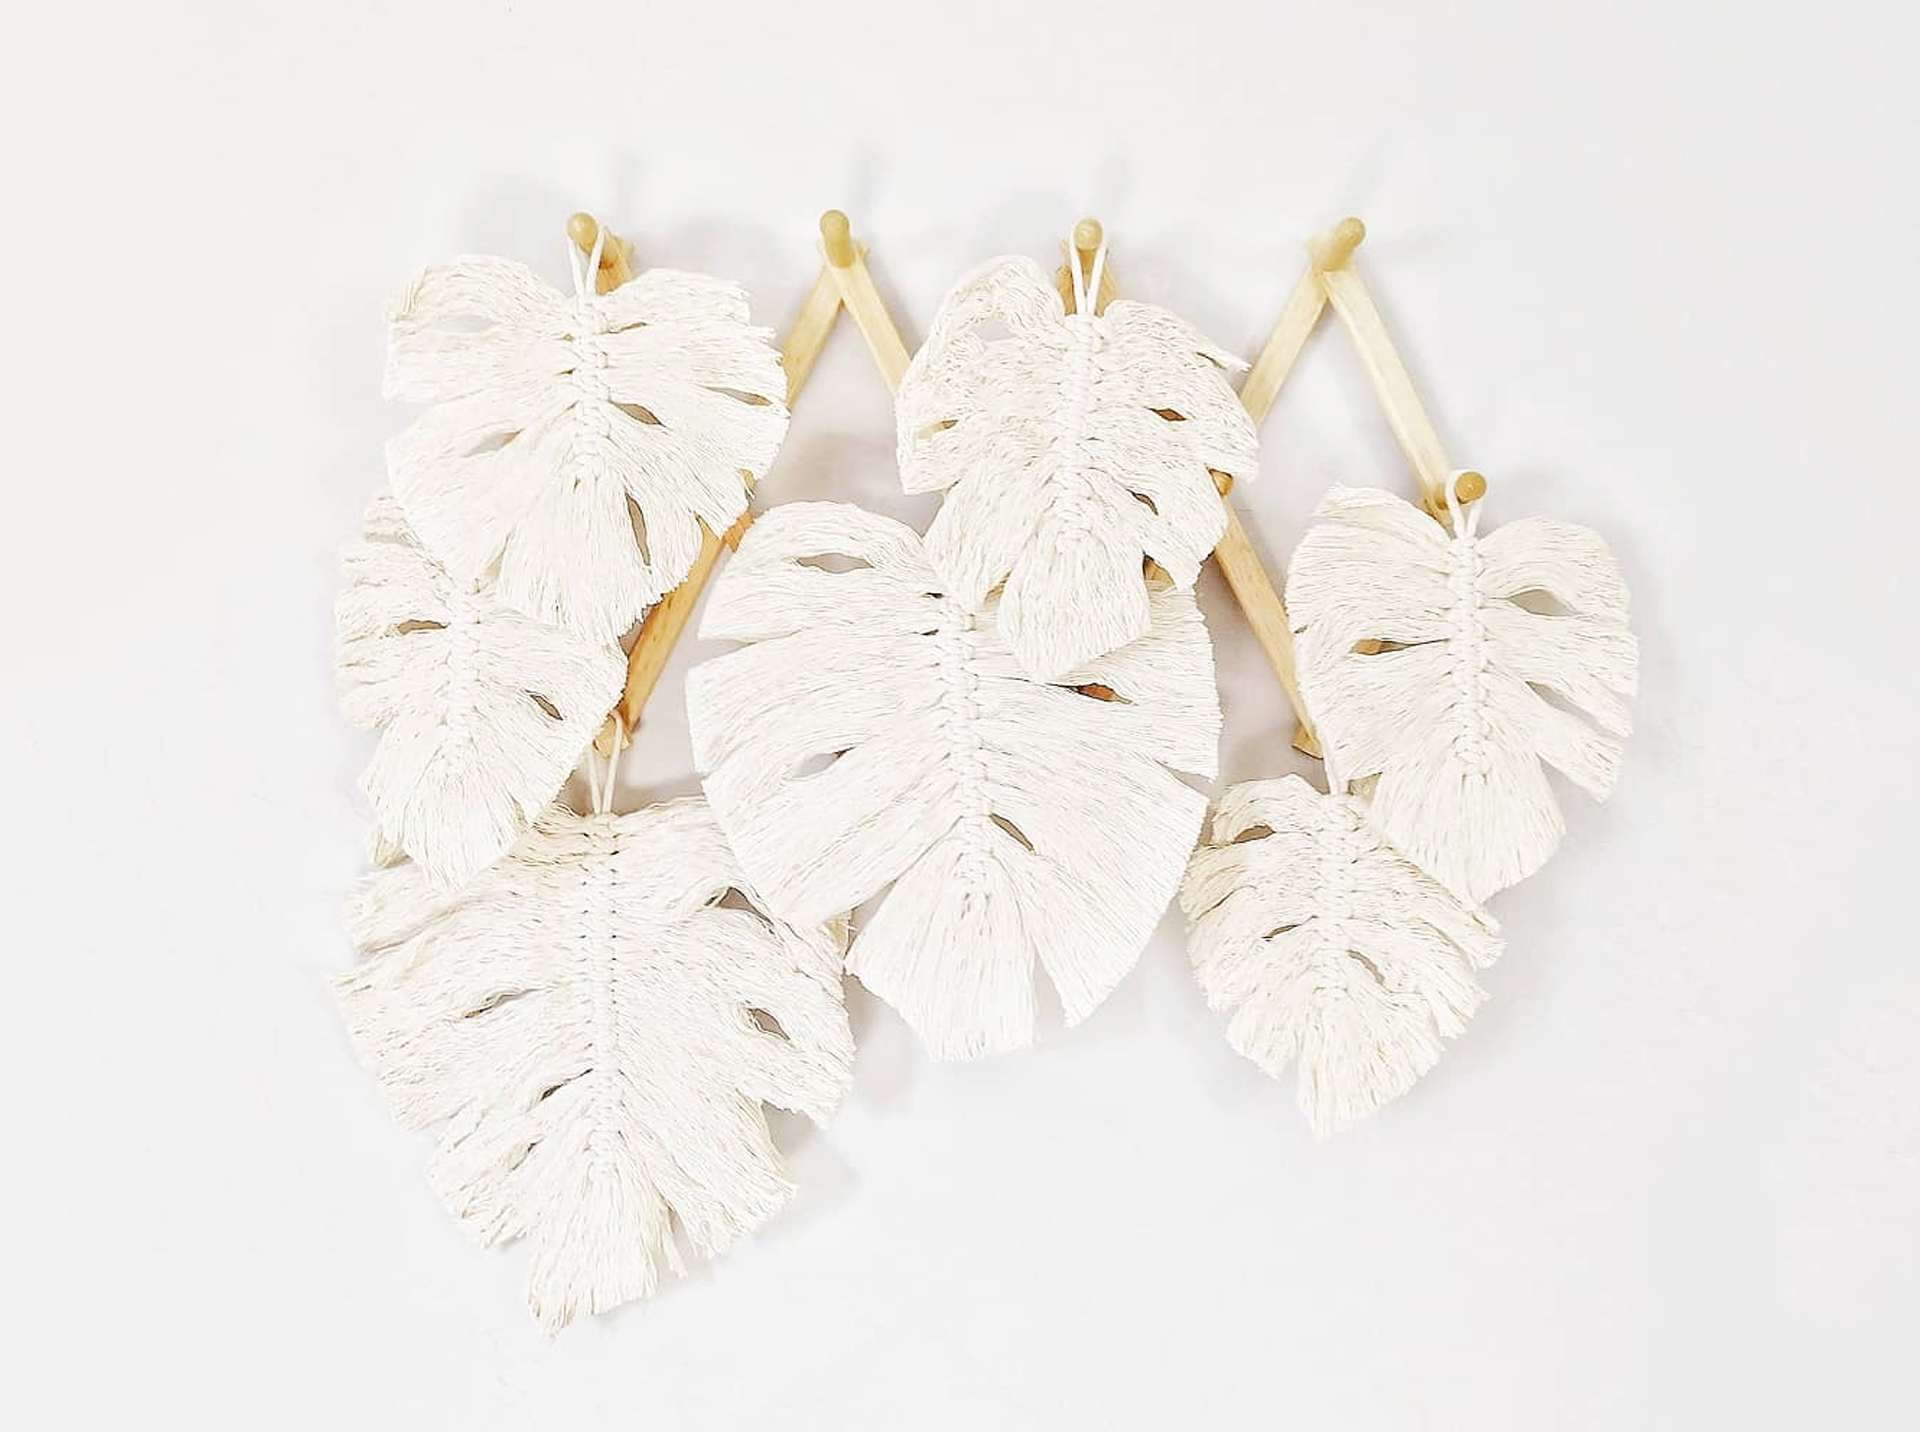 Macrame Leaves_Damaris Kovachart2.jpg